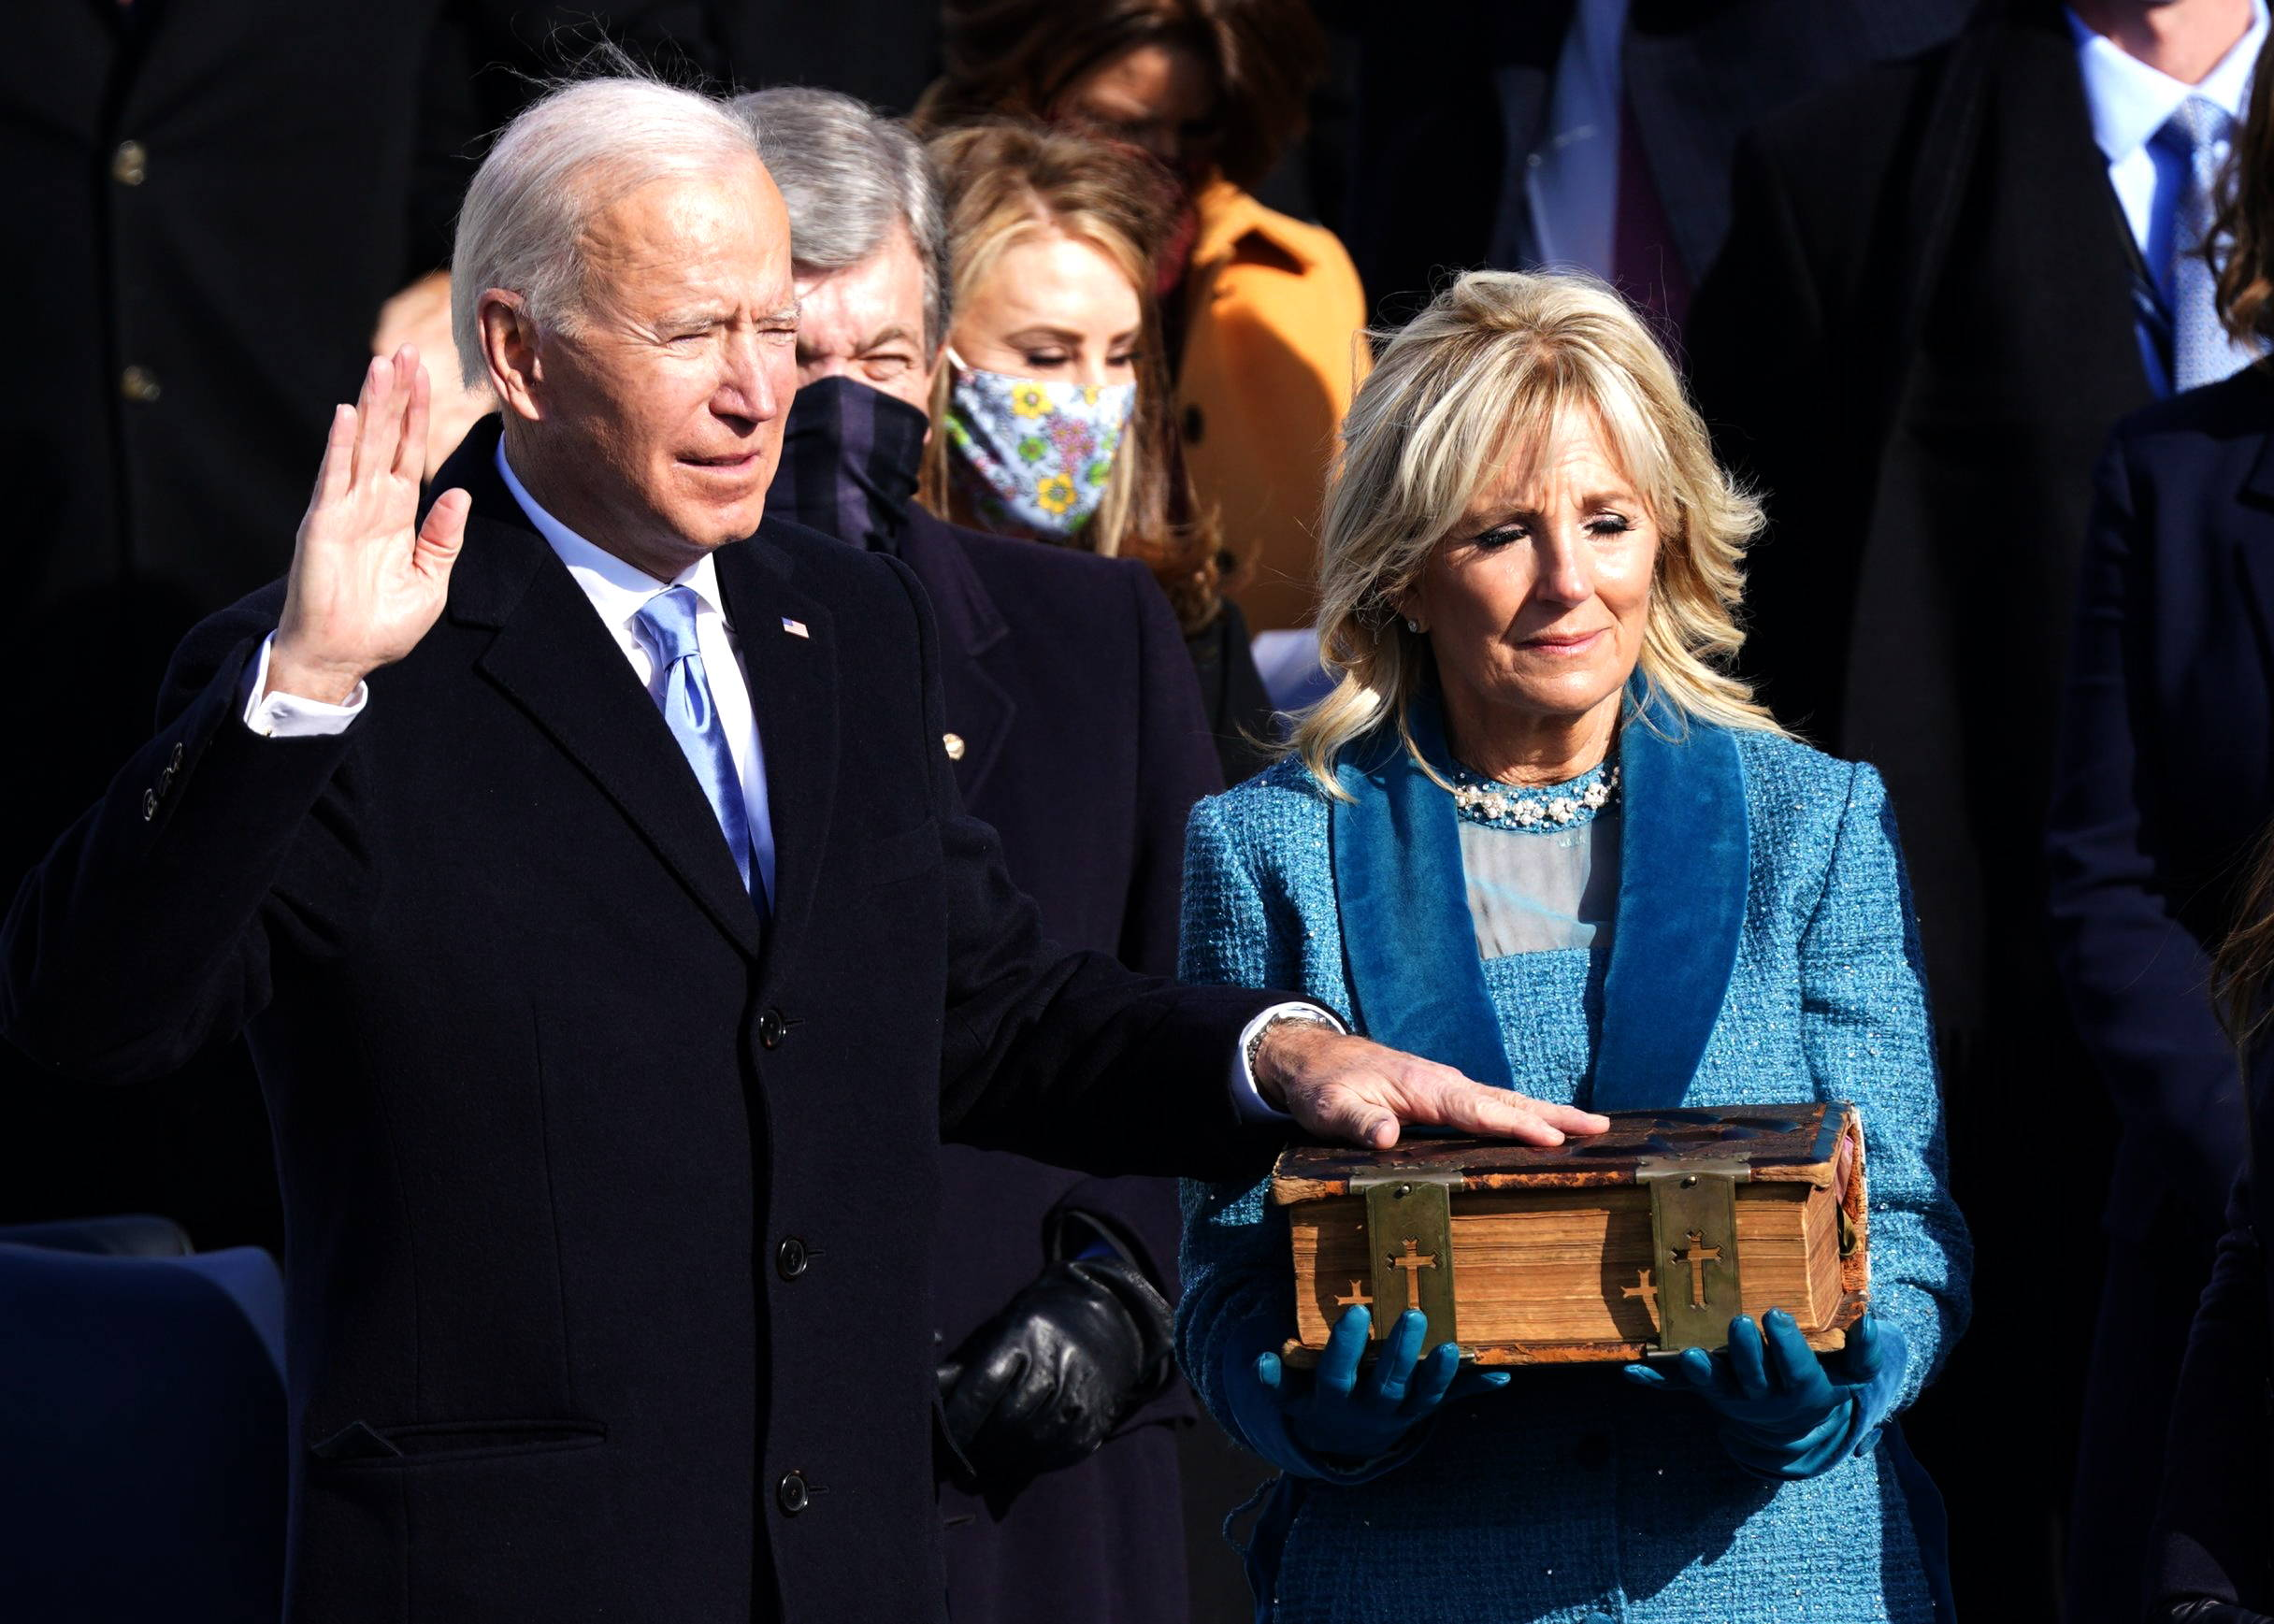 Joseph R. Biden is sworn in as the 46th President of the USA